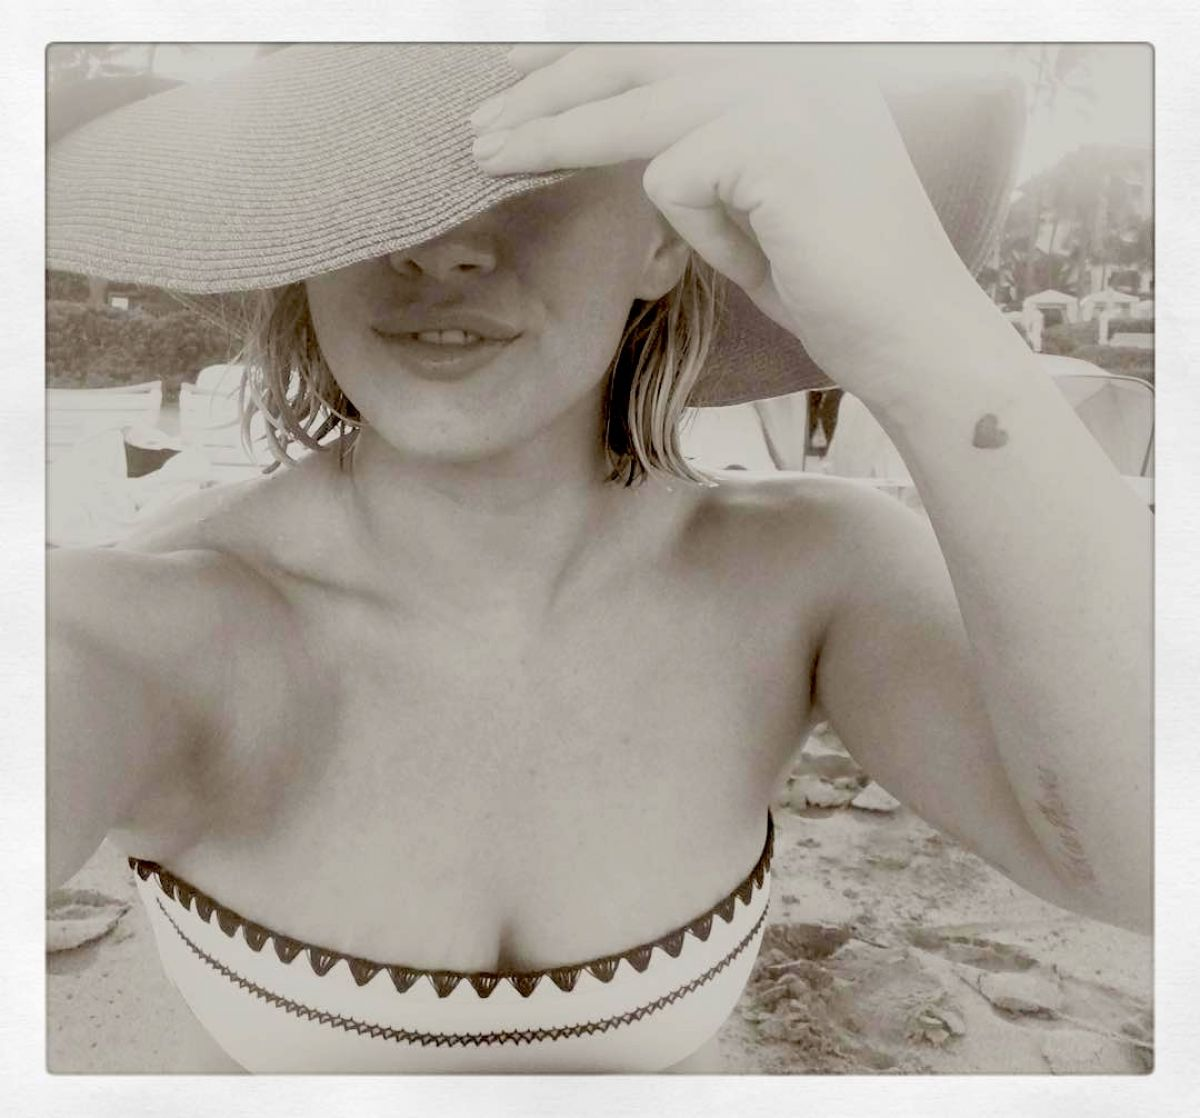 HILARY DUFF in Bikini 01/02/2016 - Instagram Pic ... Hilary Duff Instagram